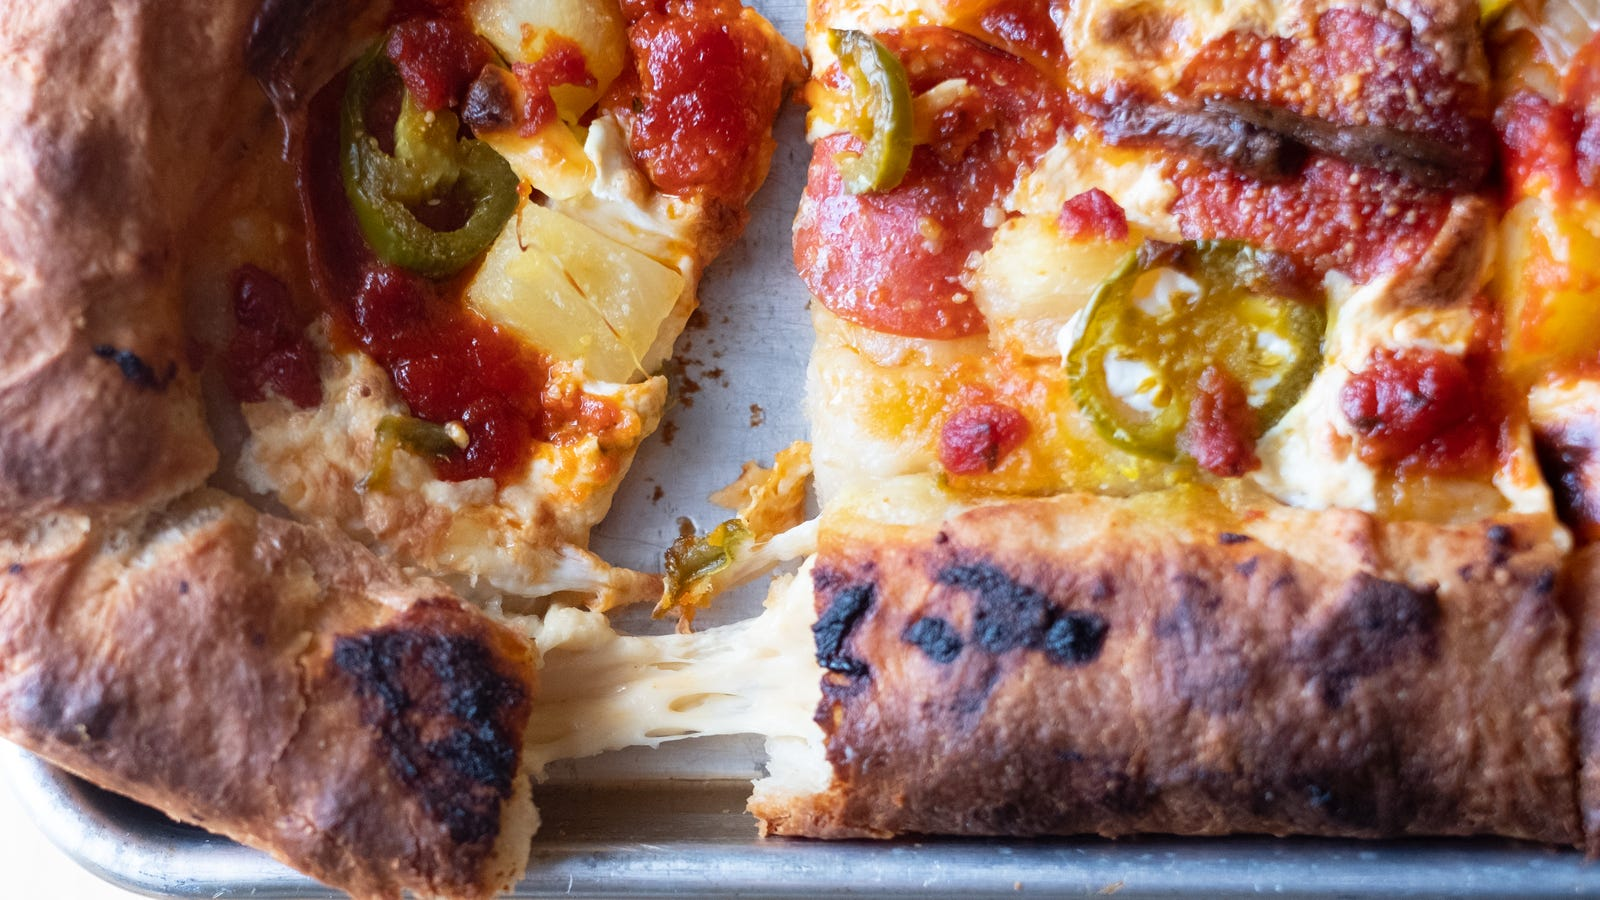 How to Make Your Own Stuffed Crust Pizza